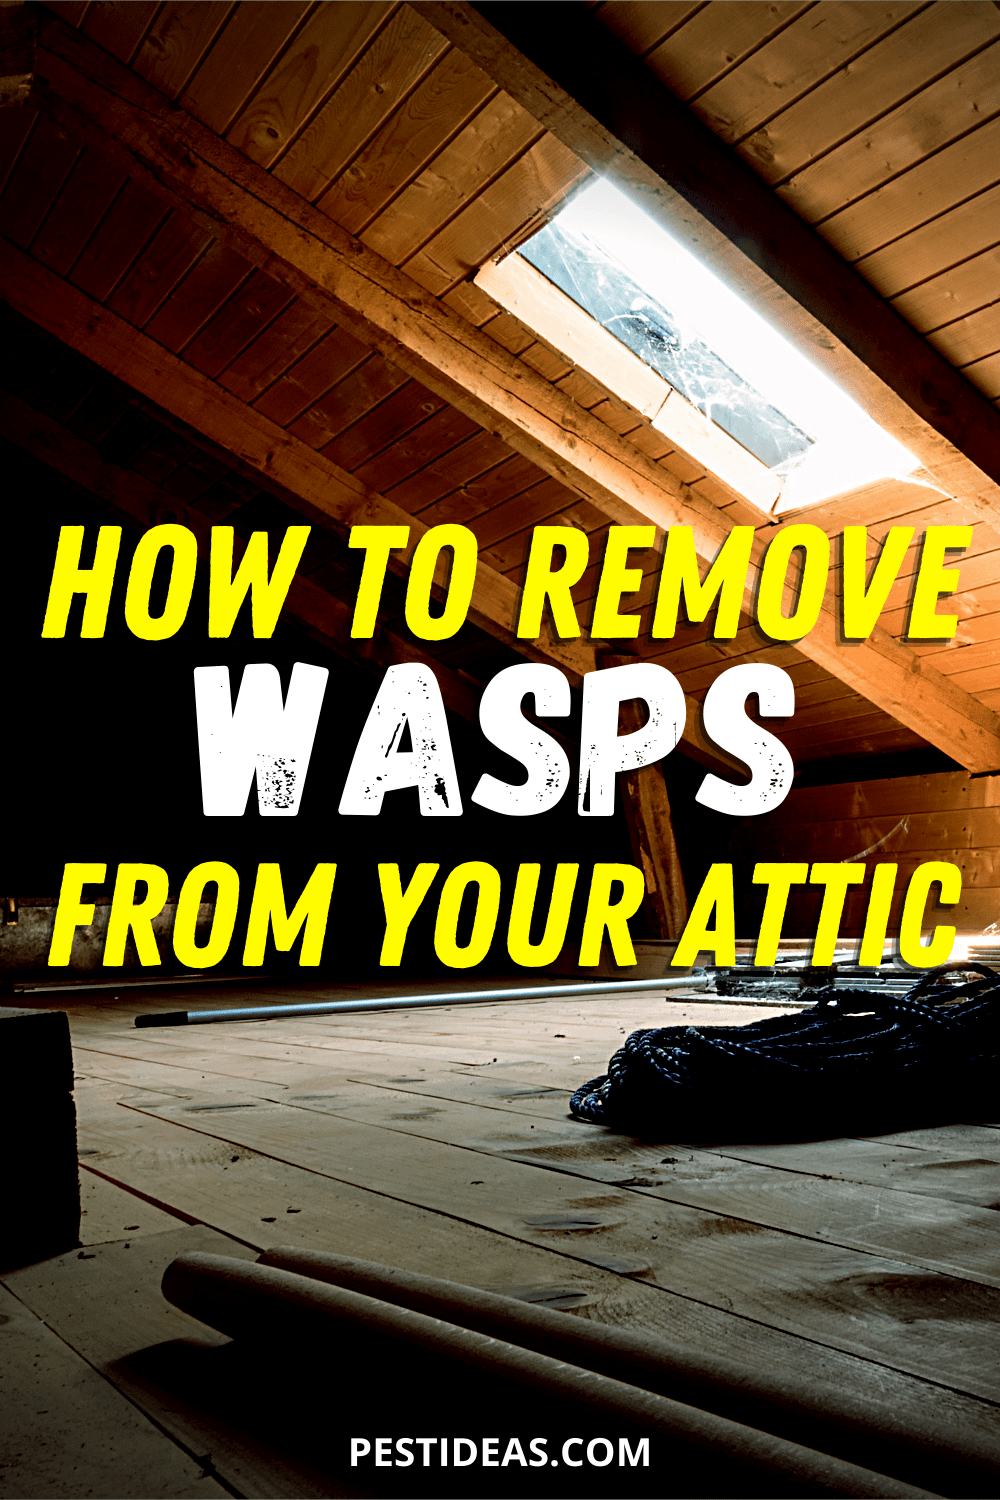 How to remove wasps from your attic